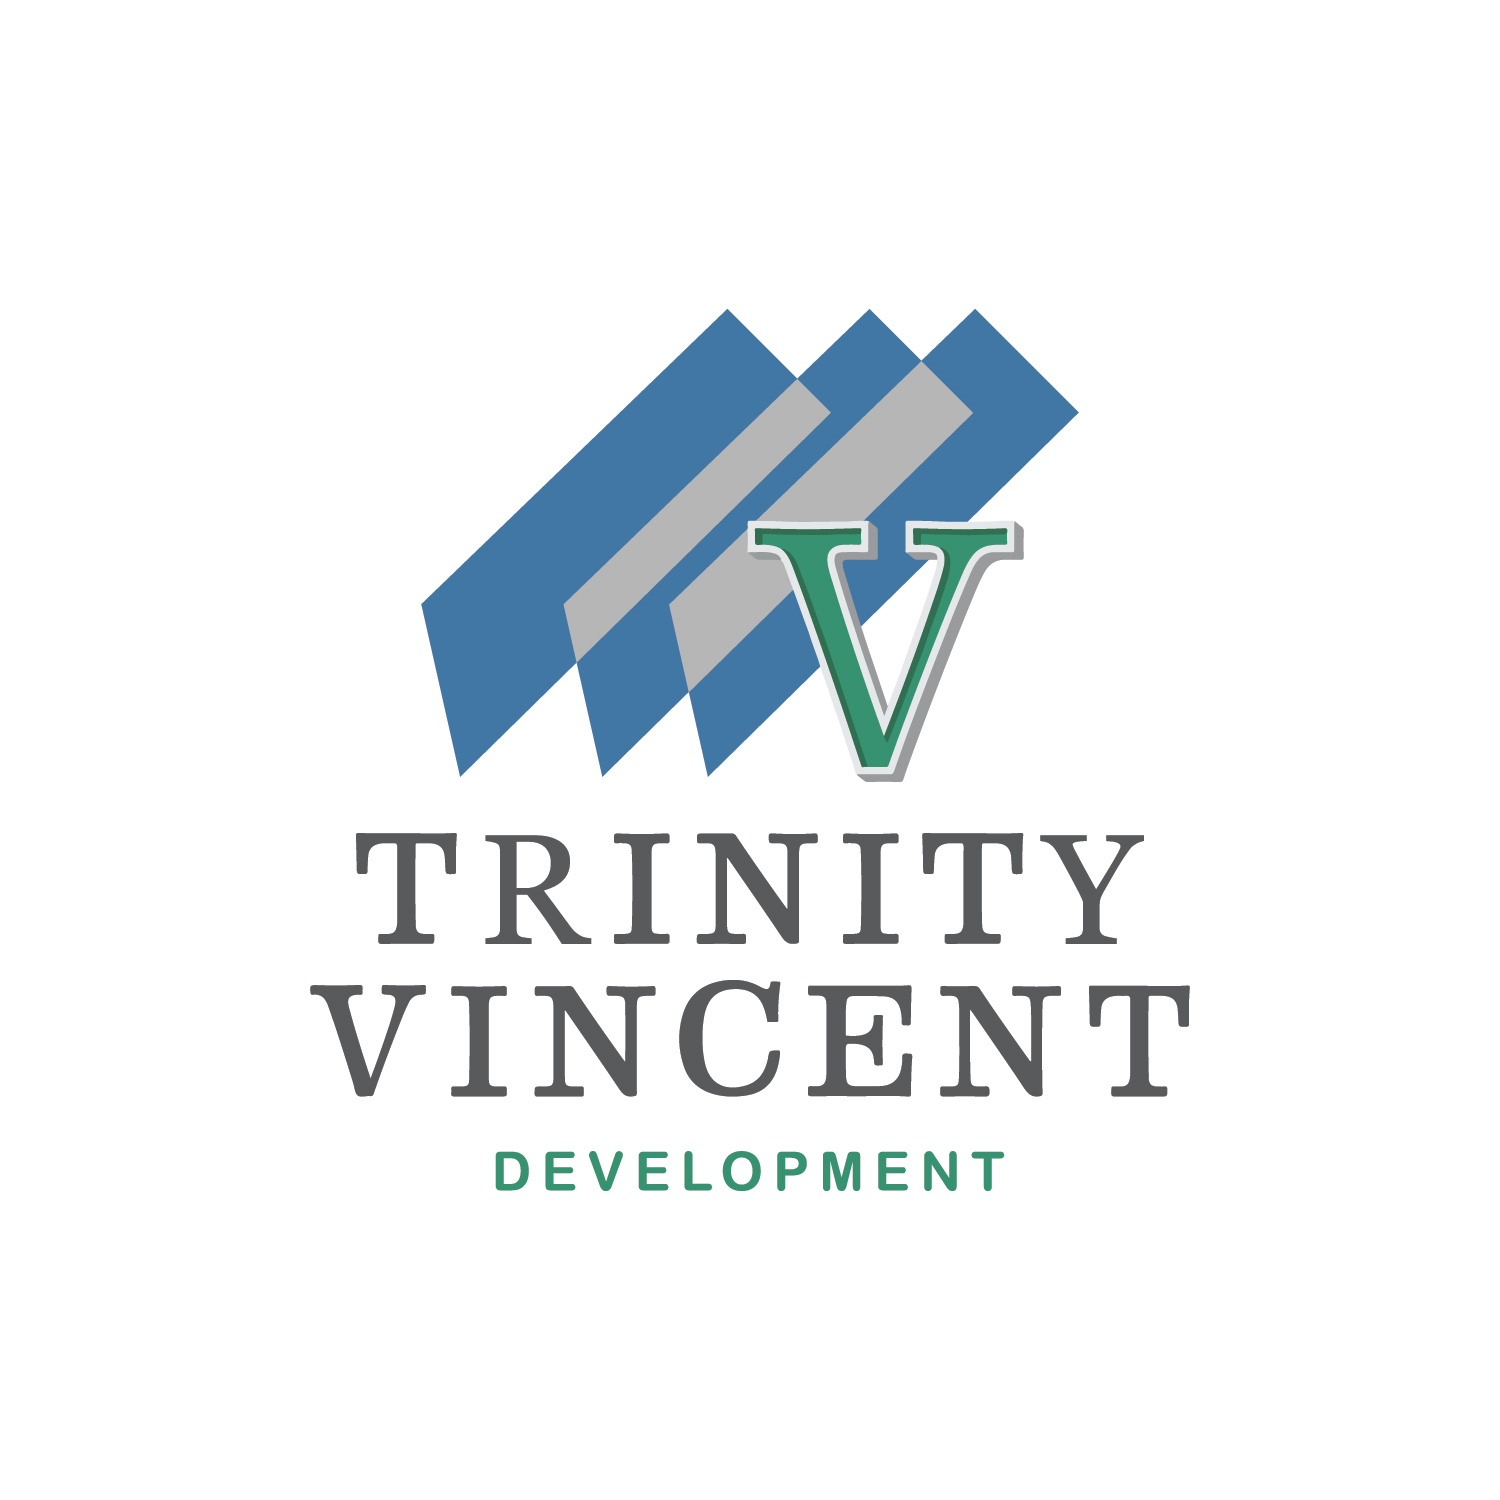 Vincent Trinity Development Square Logo